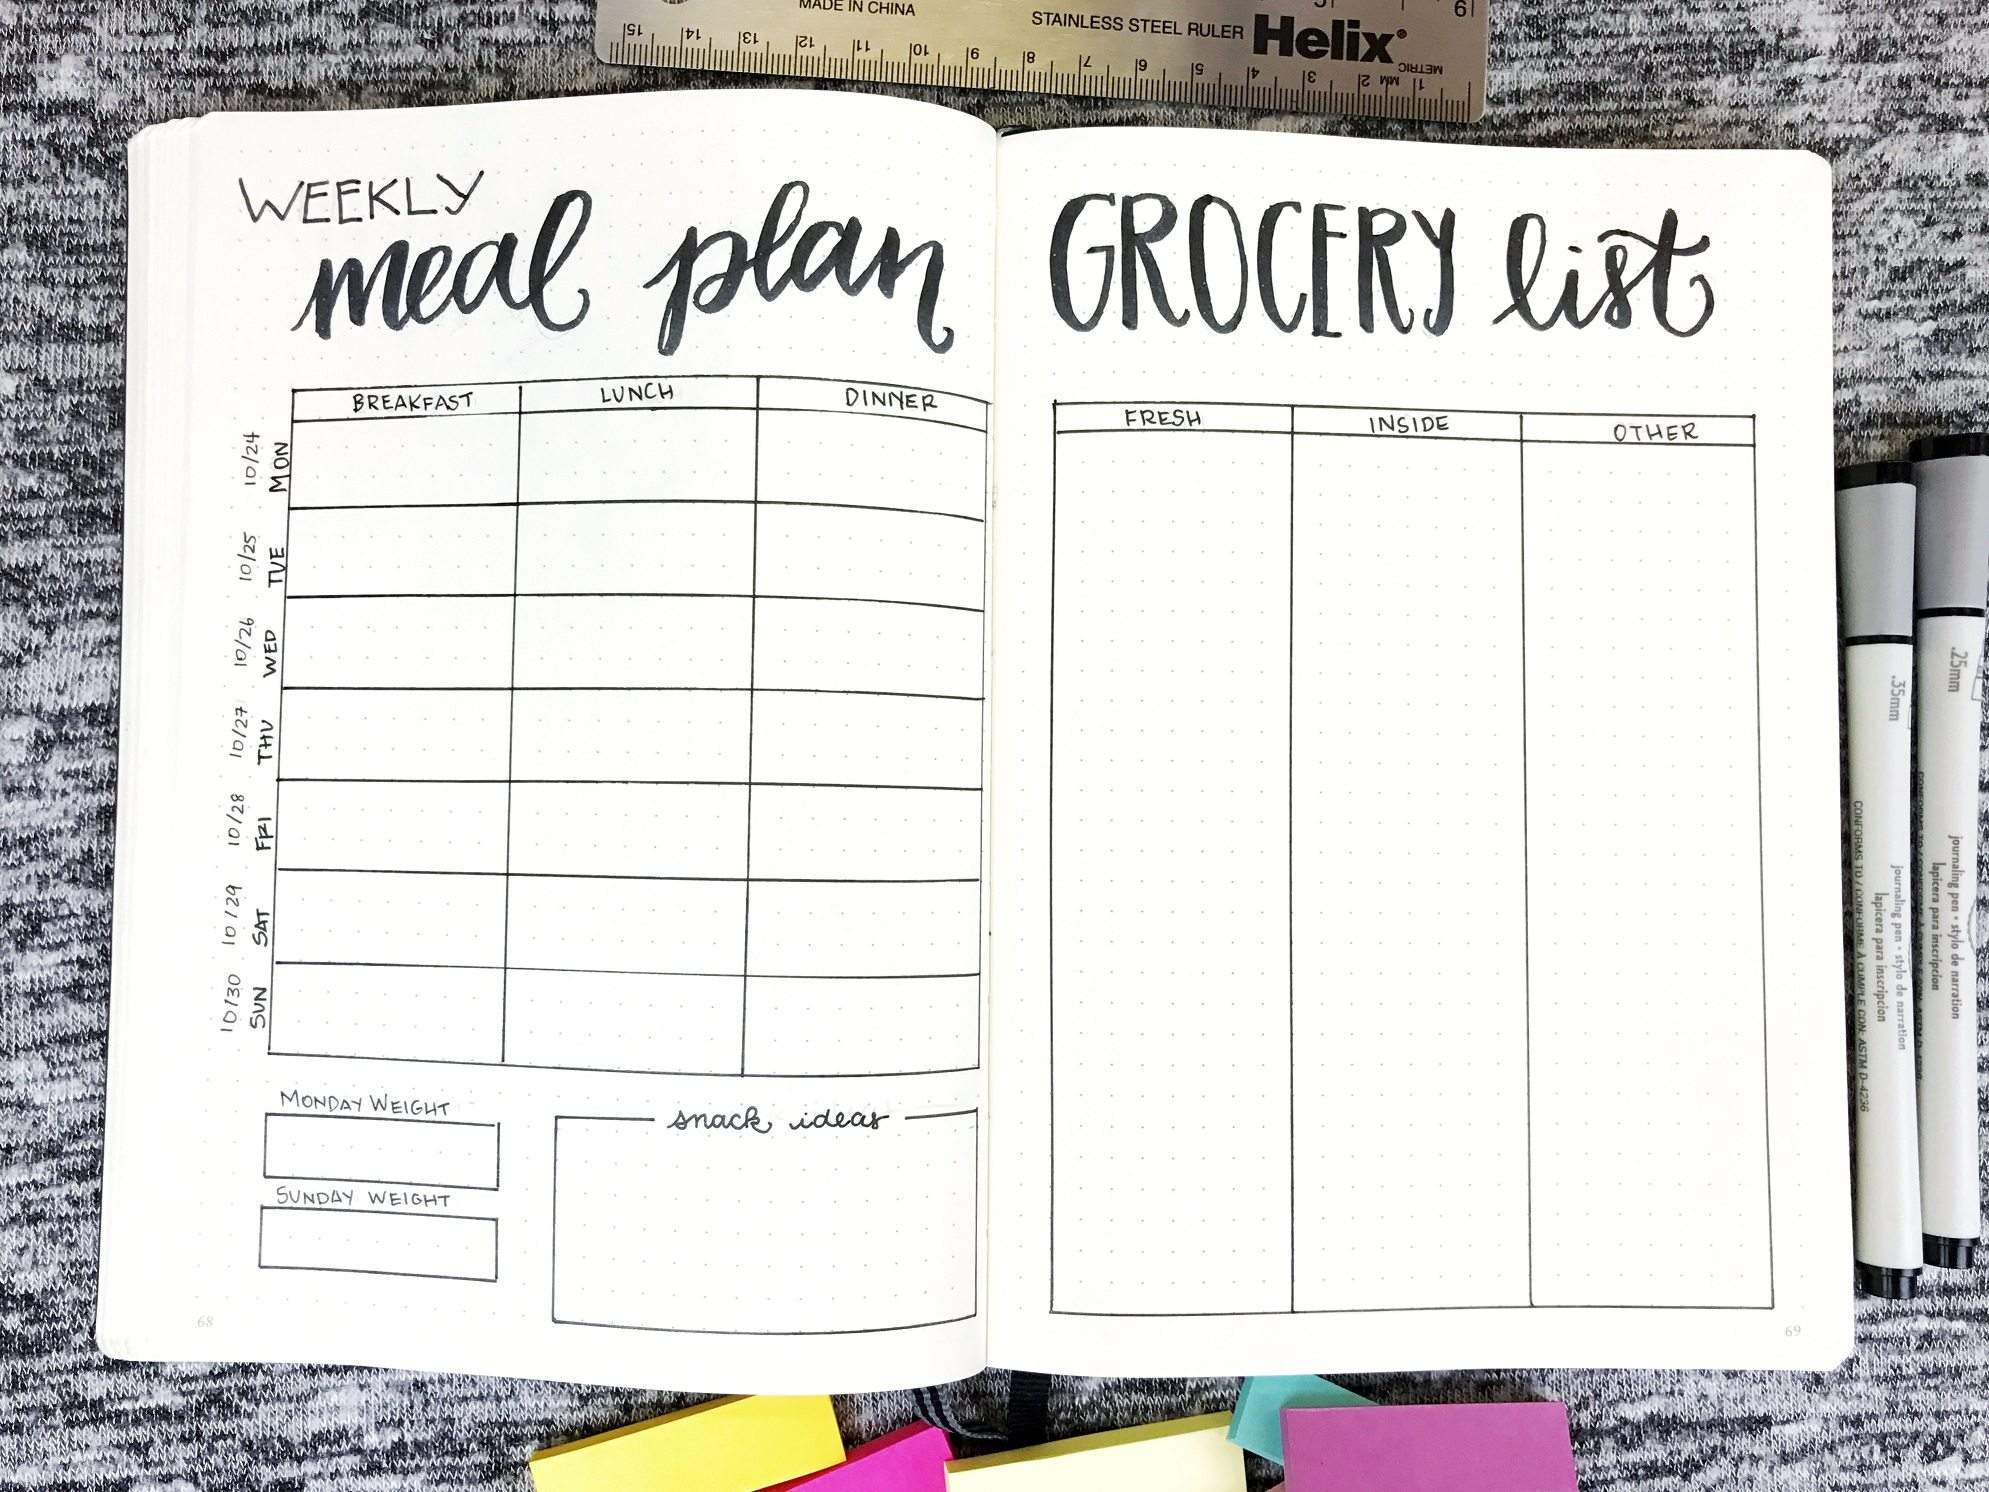 Fitness Meal planner to keep healthy